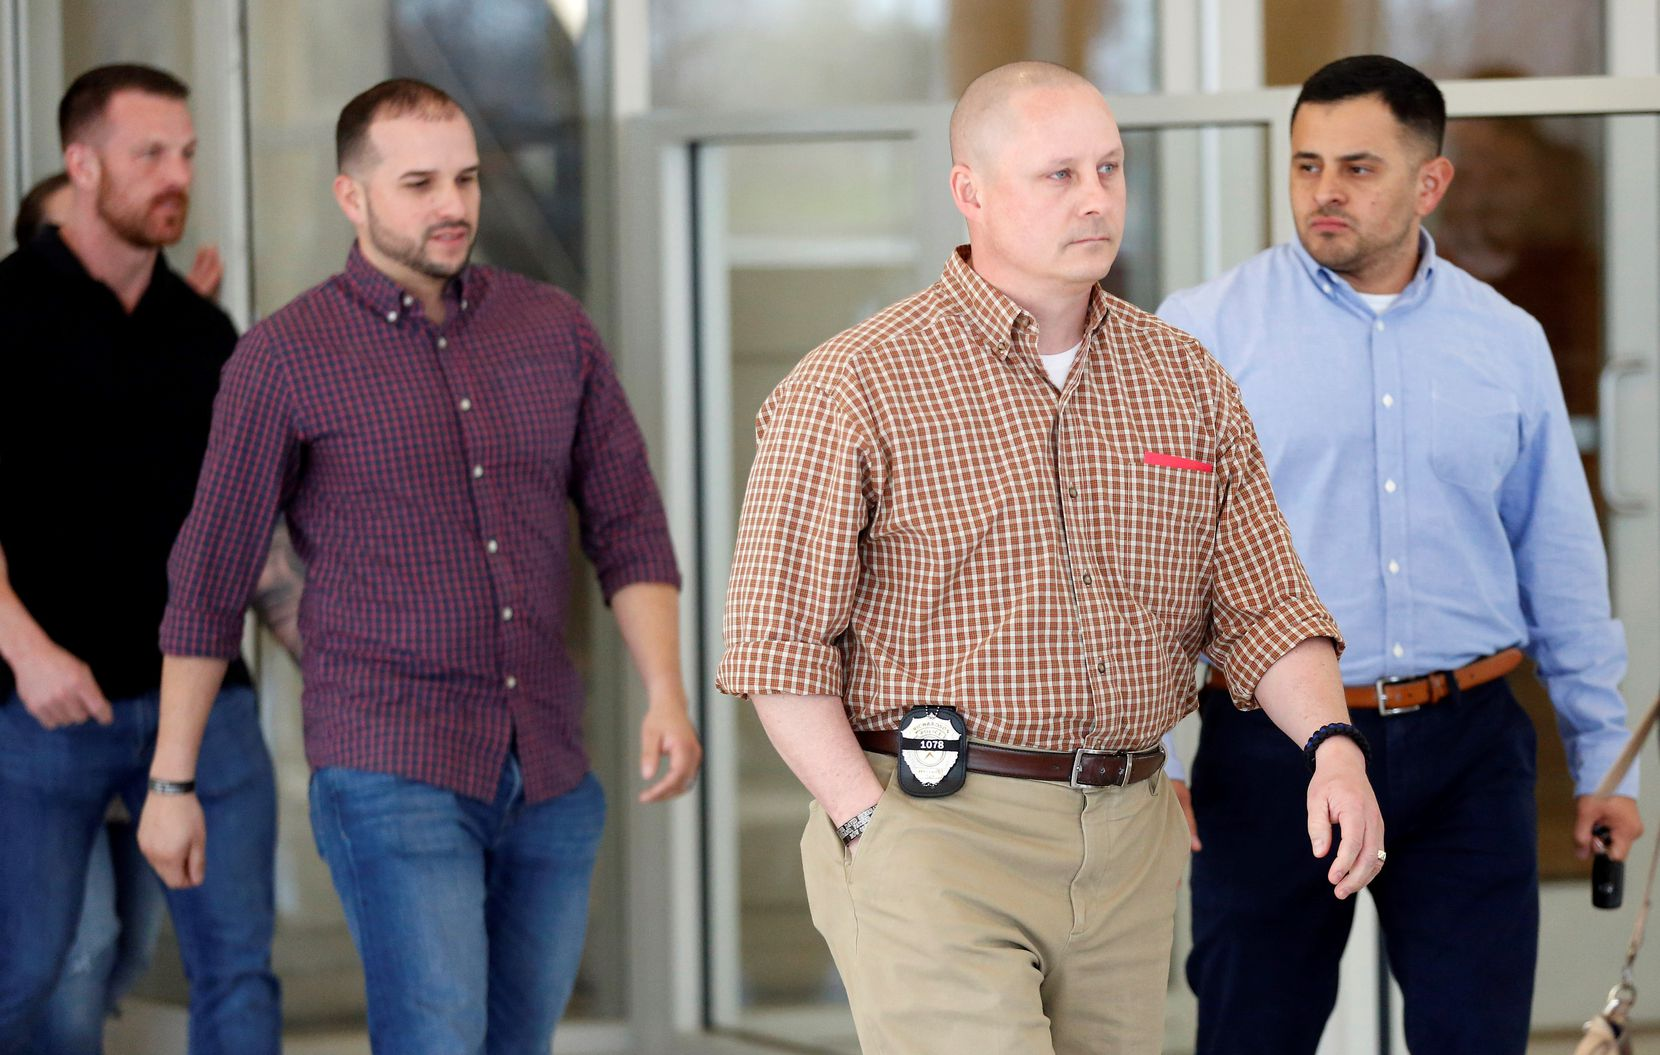 Fellow police officers of David Sherrard leave the Collin County Courthouse in McKinney after closing arguments in the sentencing of Brandon McCall on Thursday.